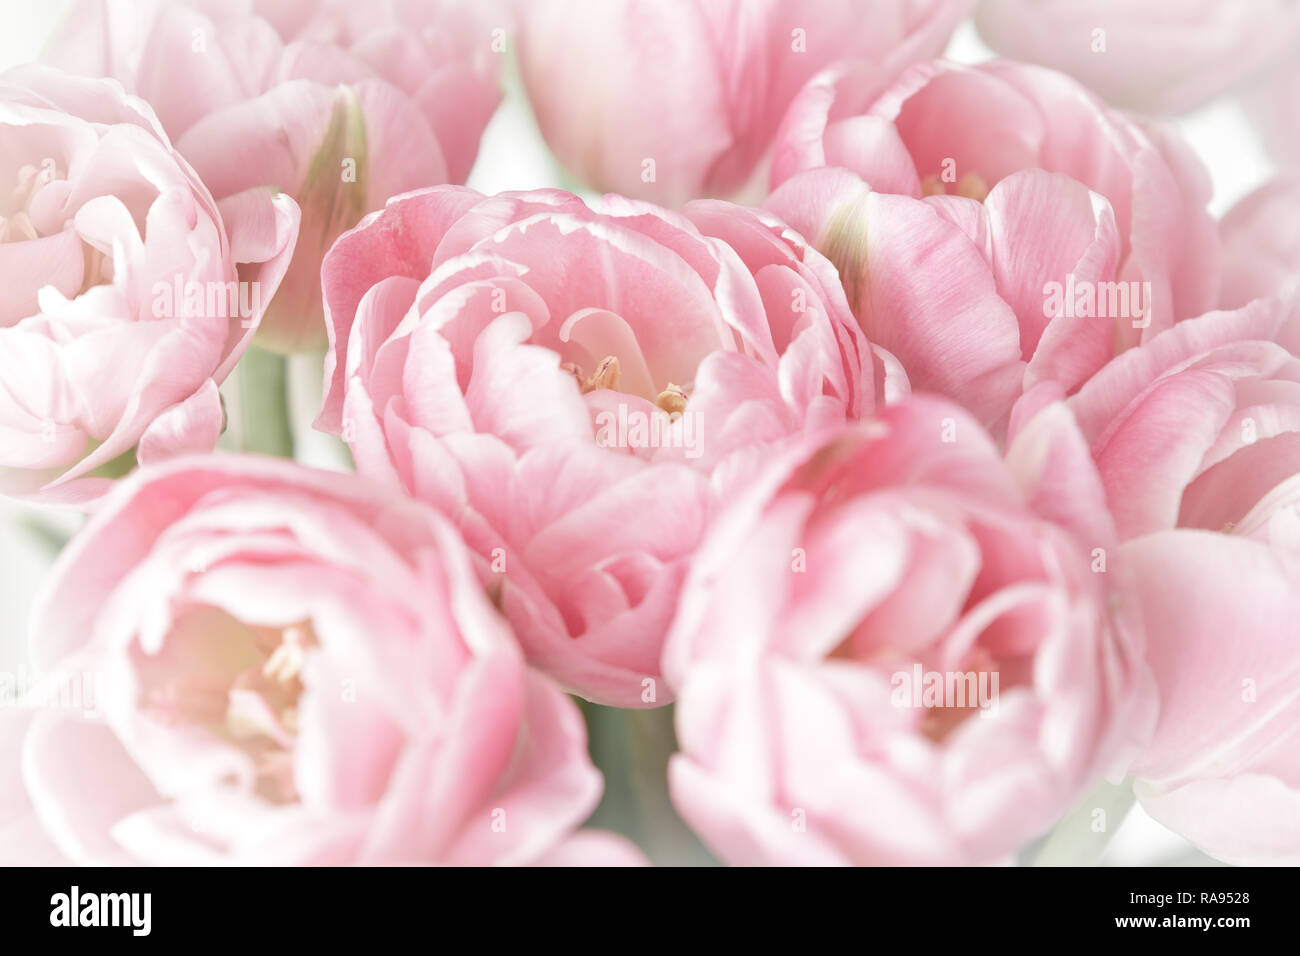 Pink tulip flowers in full bloom, nostalgic and romantic background template with vintage effect Stock Photo